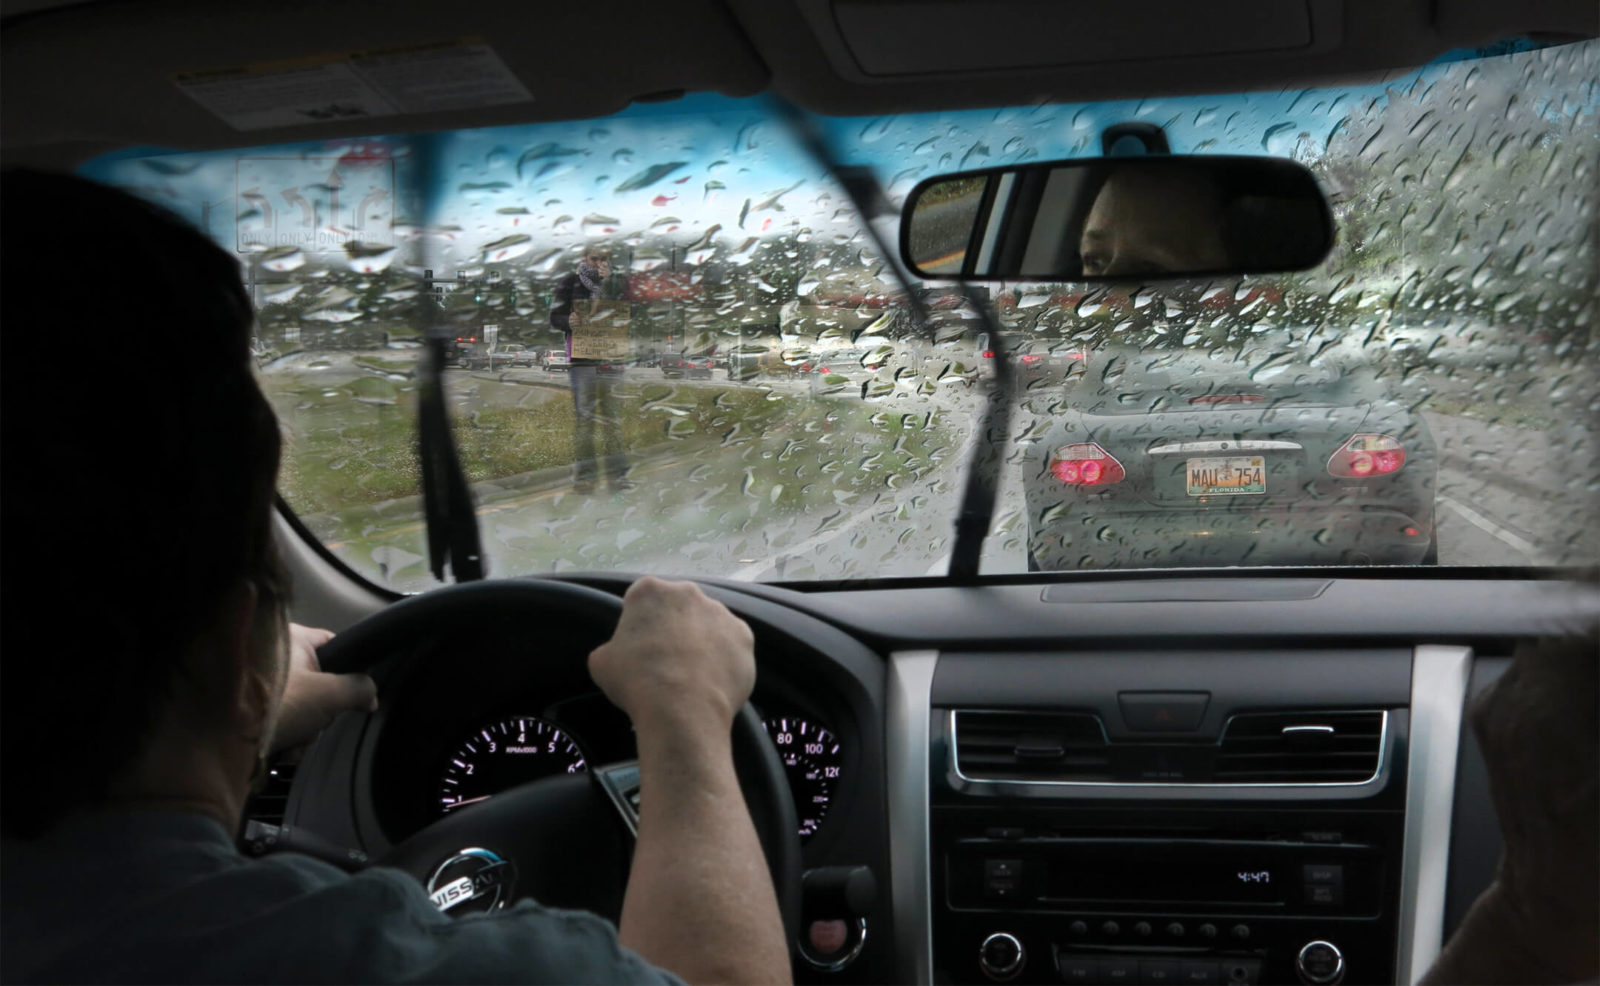 Driving home in the rain, Robin Botie of Ithaca, New York, finds a homeless person in rush hour traffic.